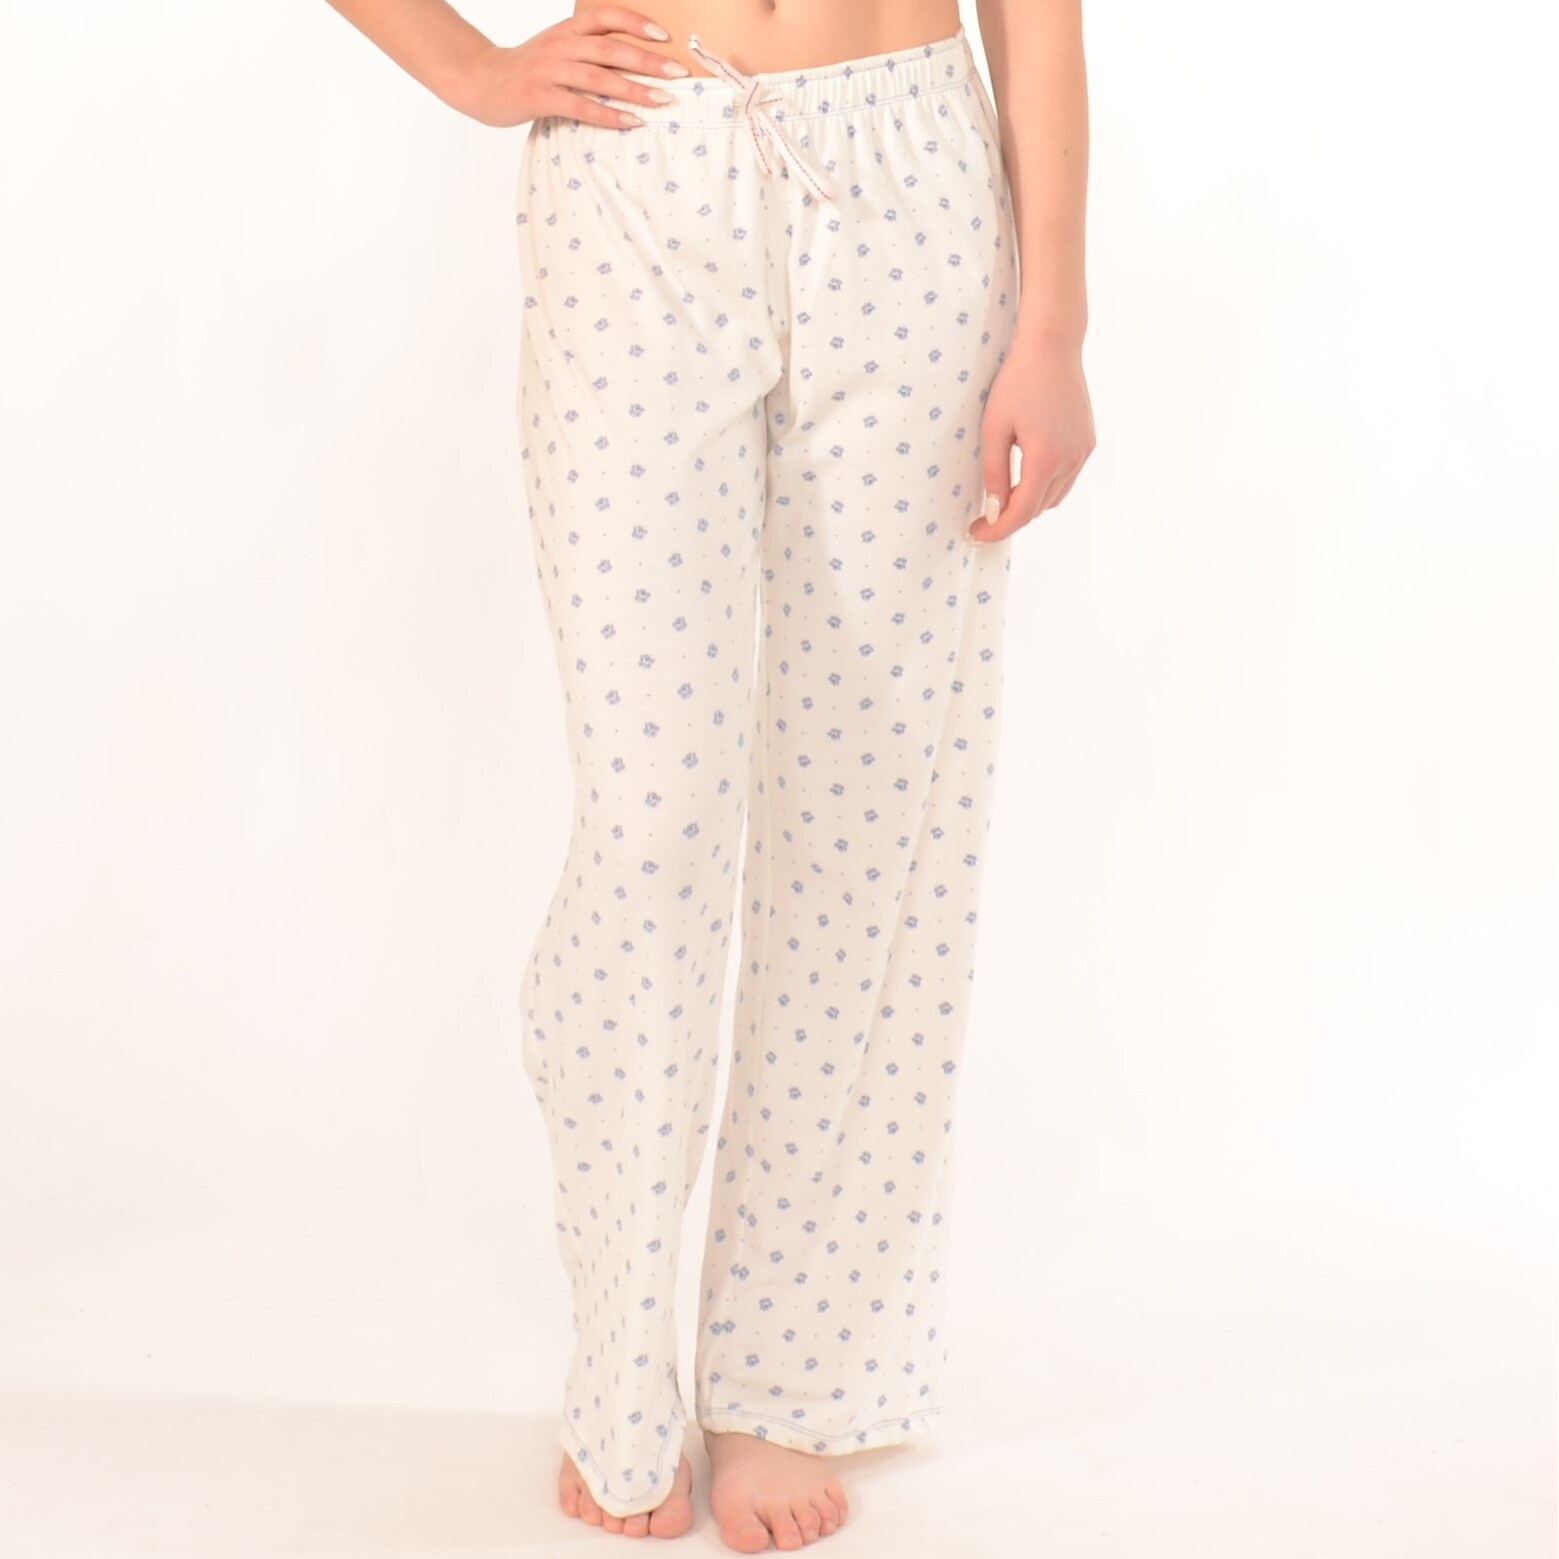 Pajama Bottoms In White With Flower Pattern Free Shipping On